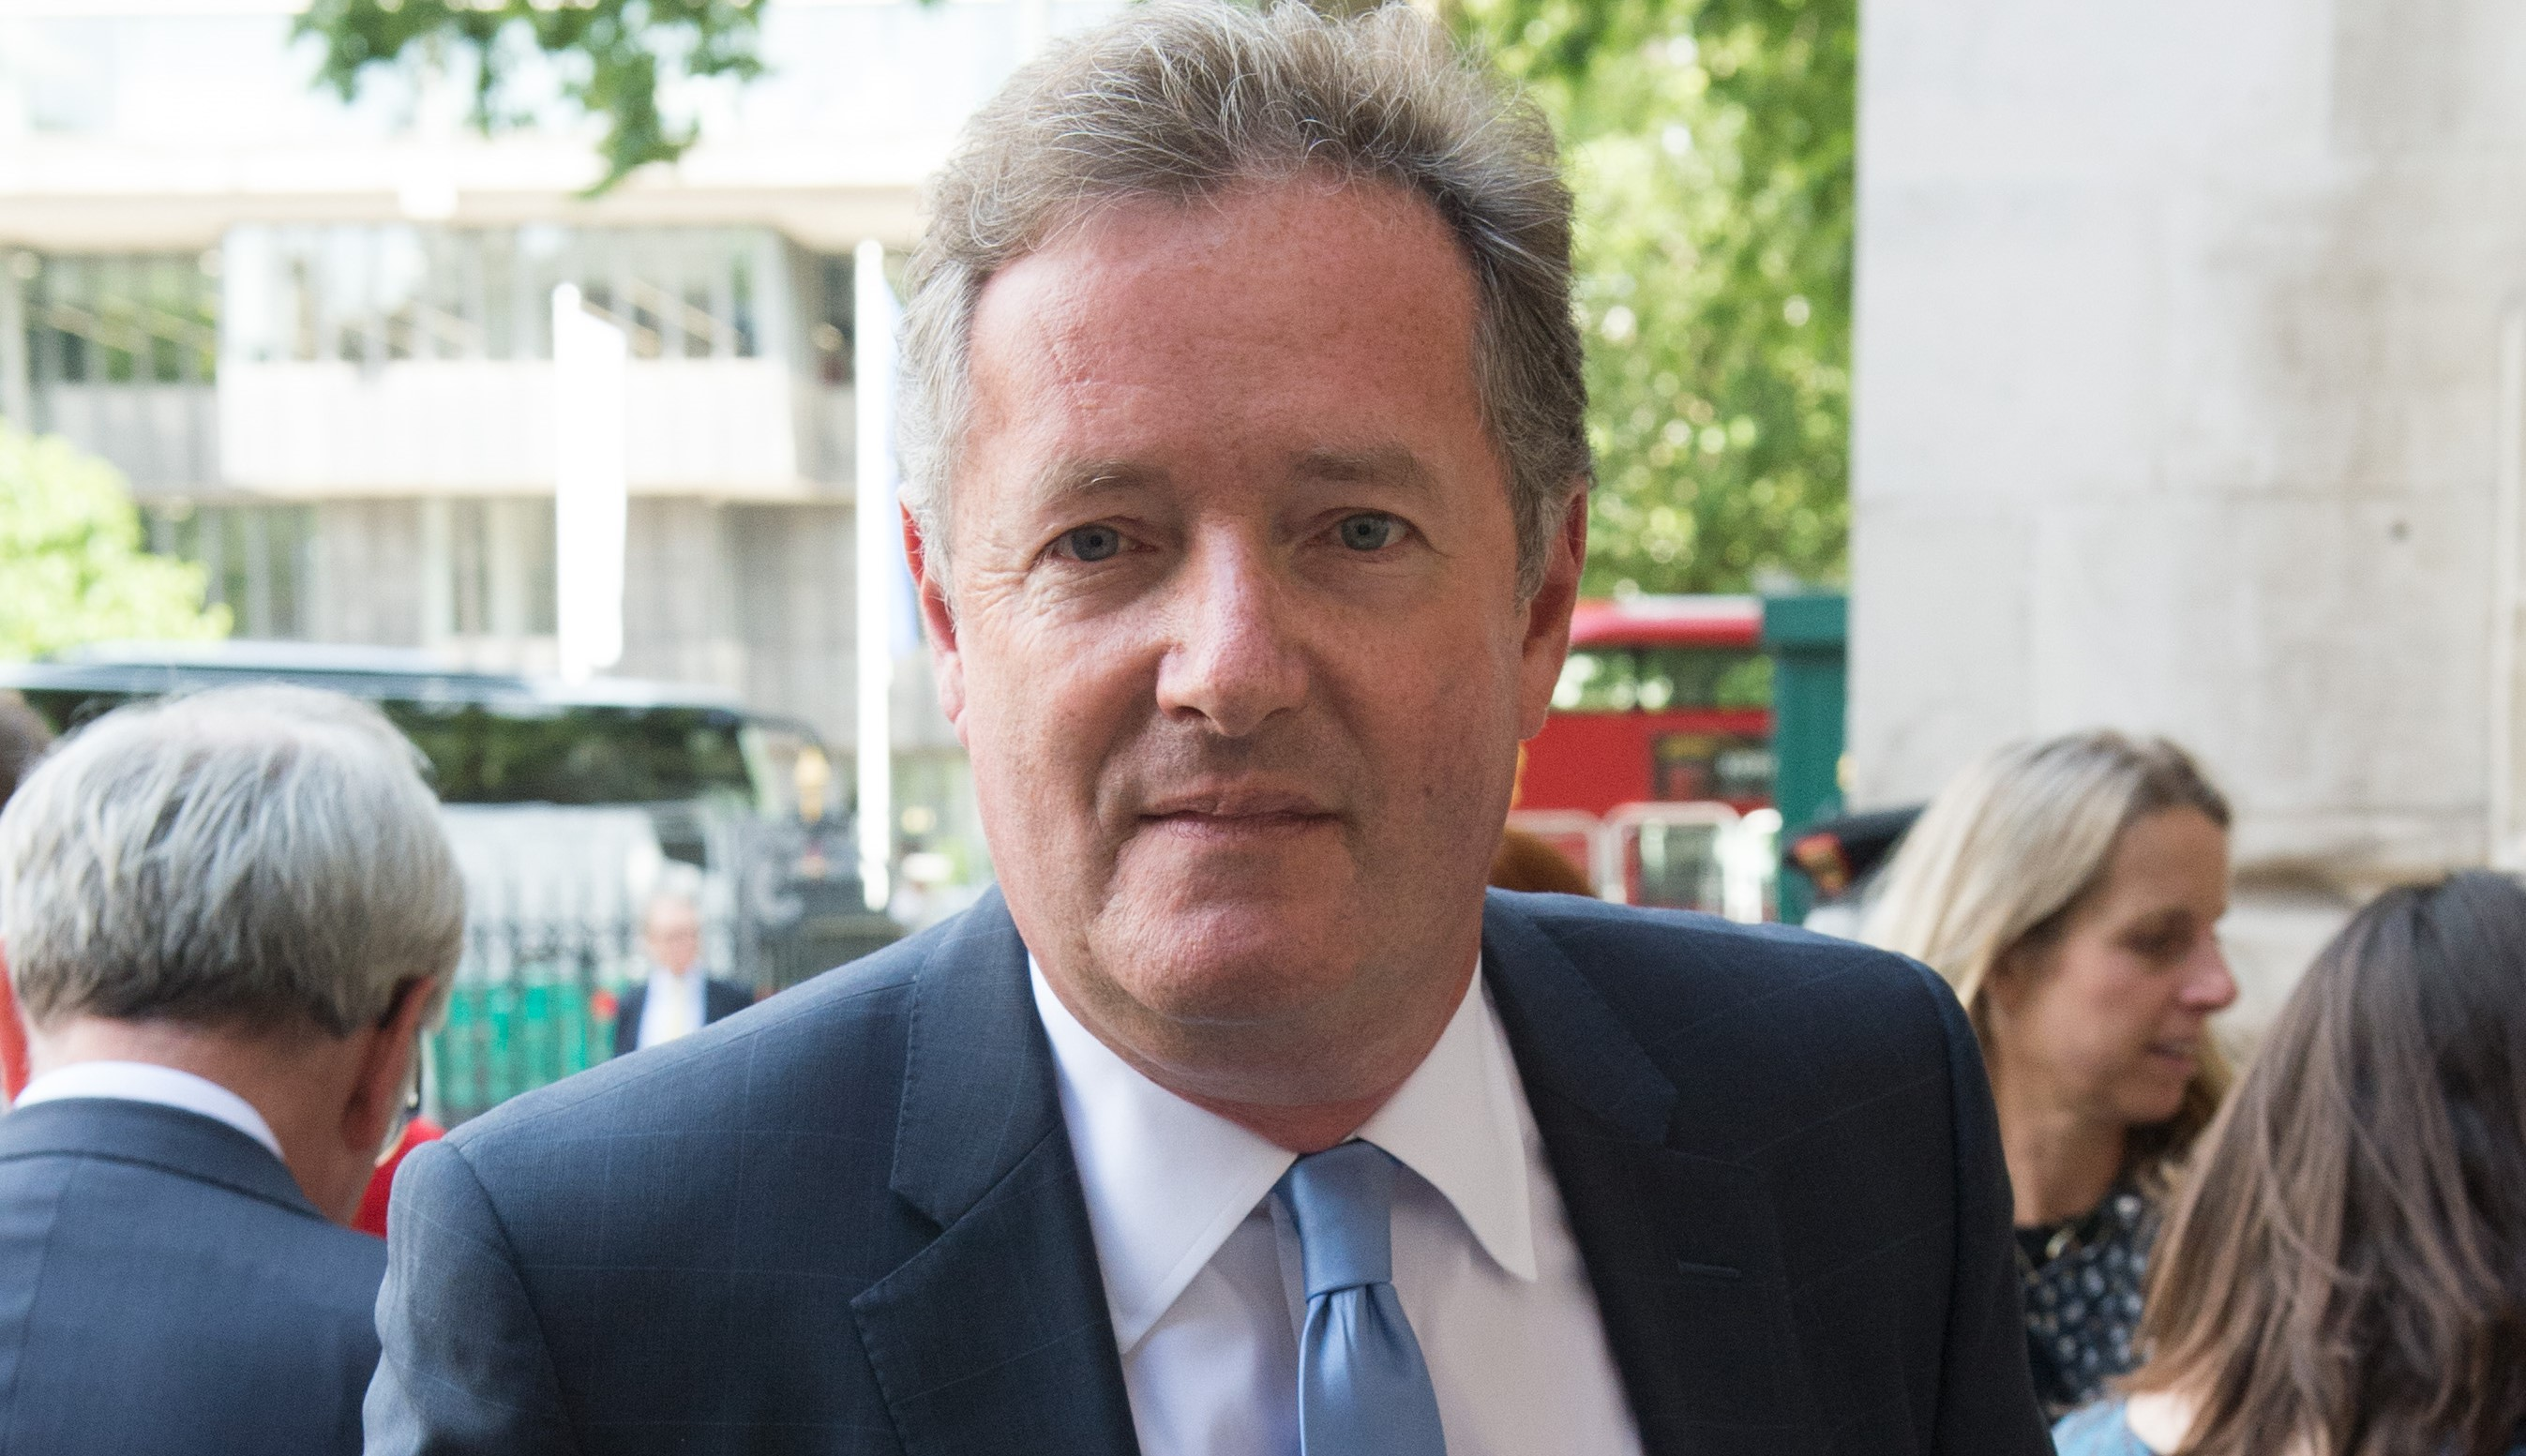 Piers Morgan stuns fans with photo of his 'youthful' dad